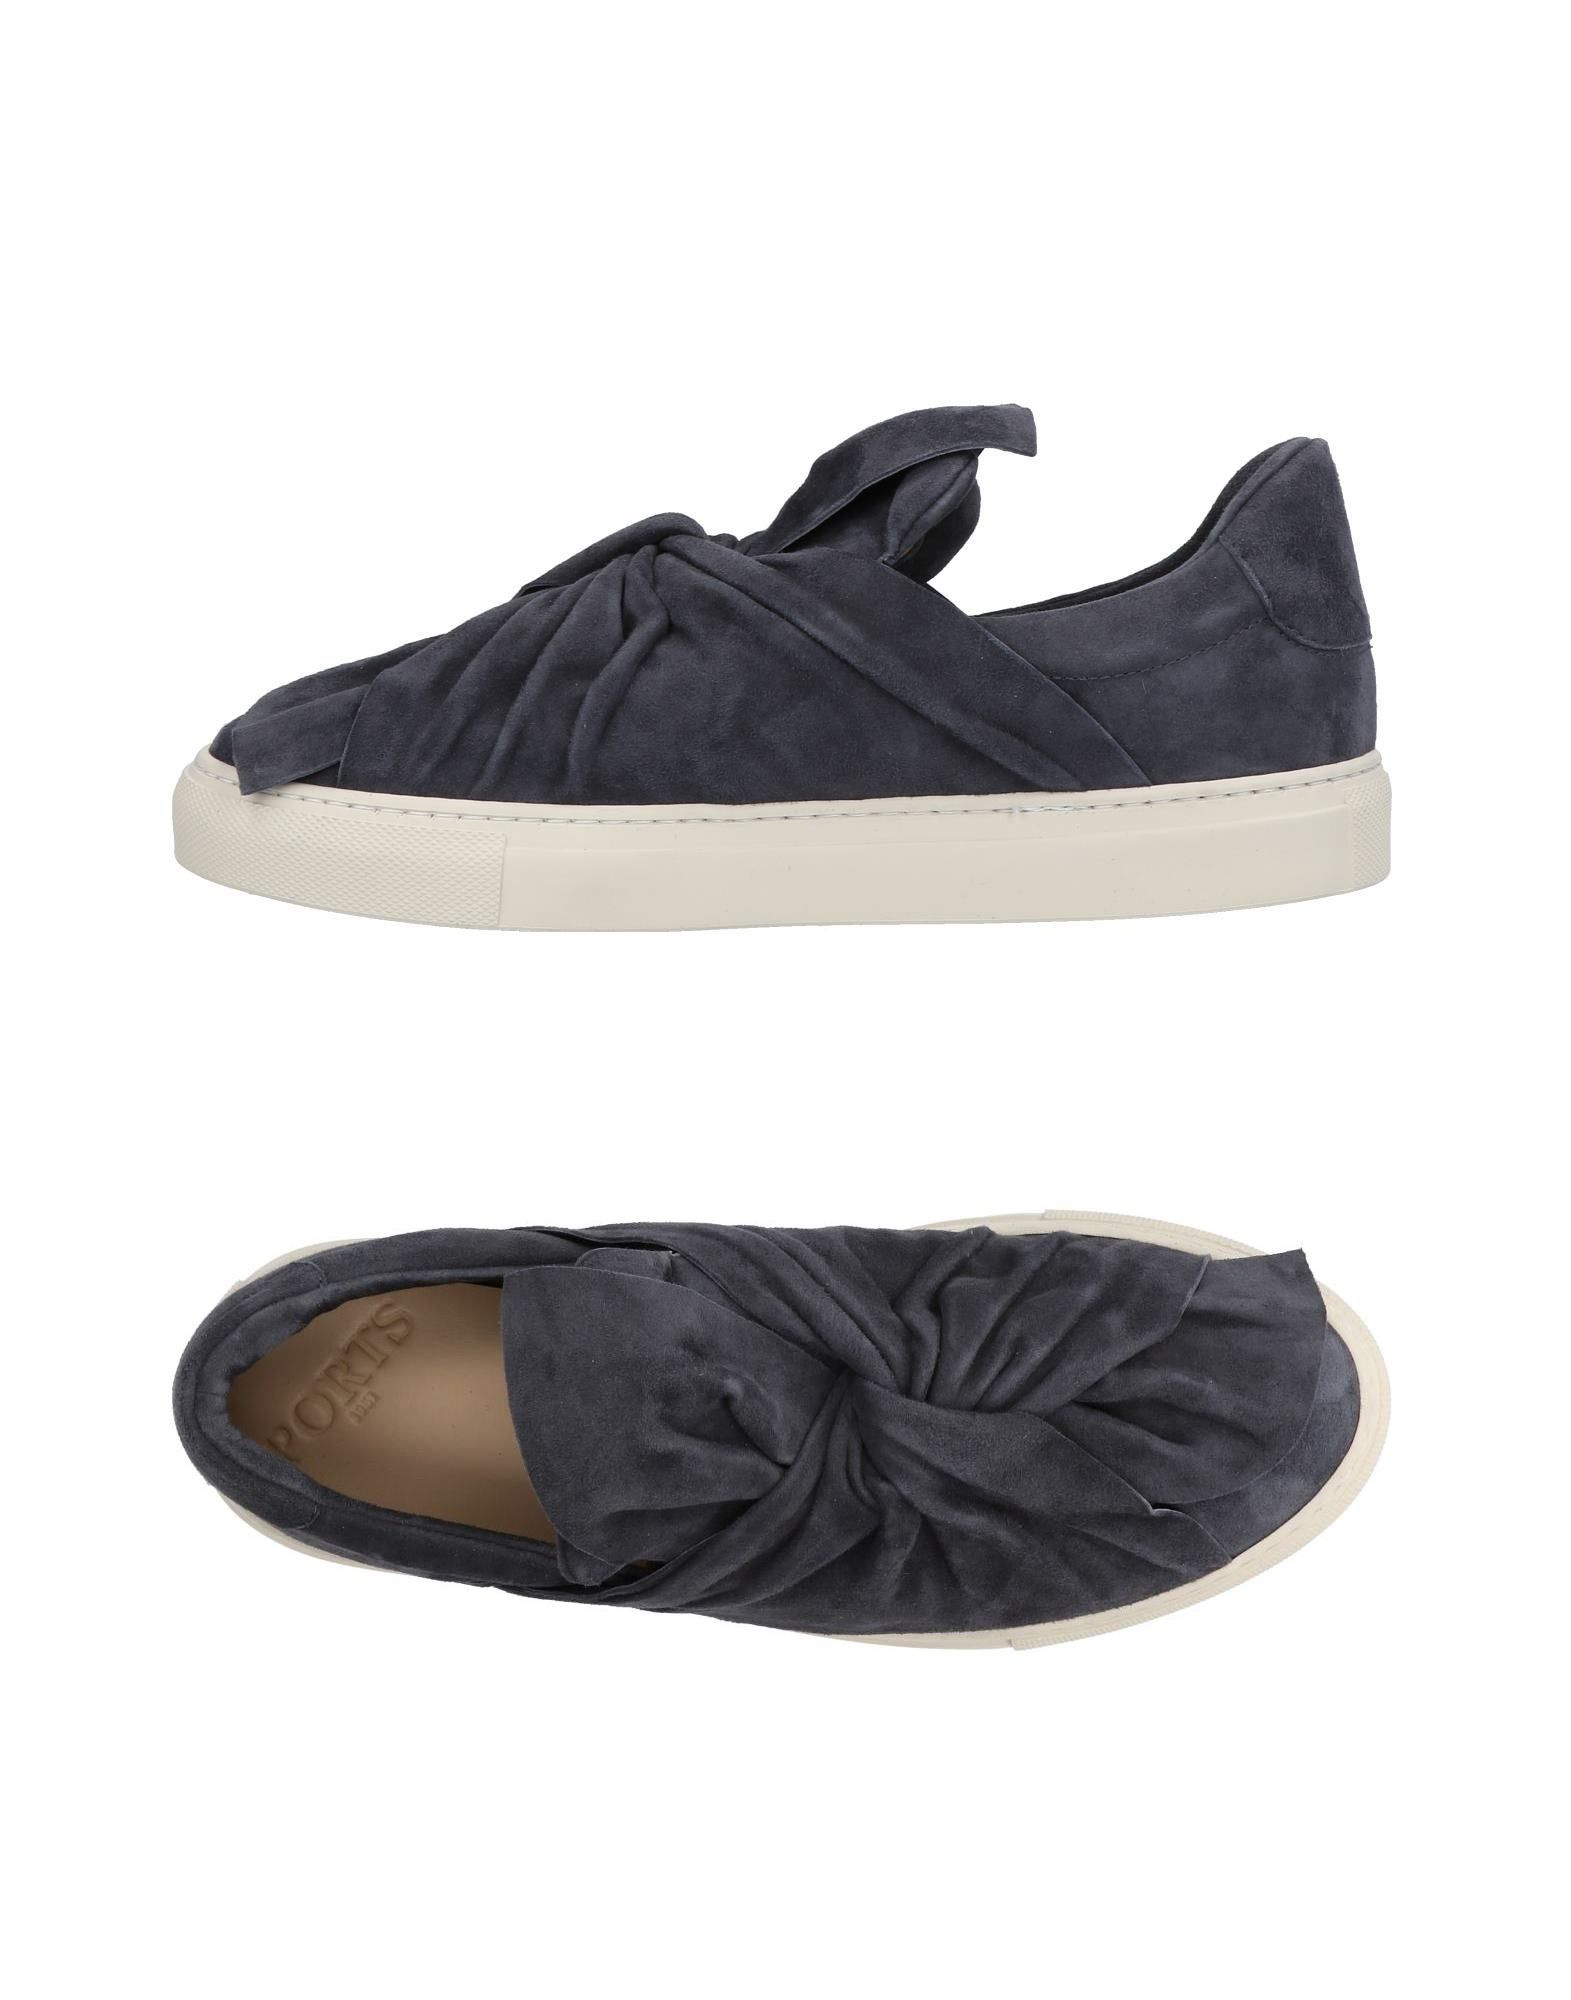 Sneakers Ports Ports Sneakers 1961 Donna - 11463091OD 25a29d